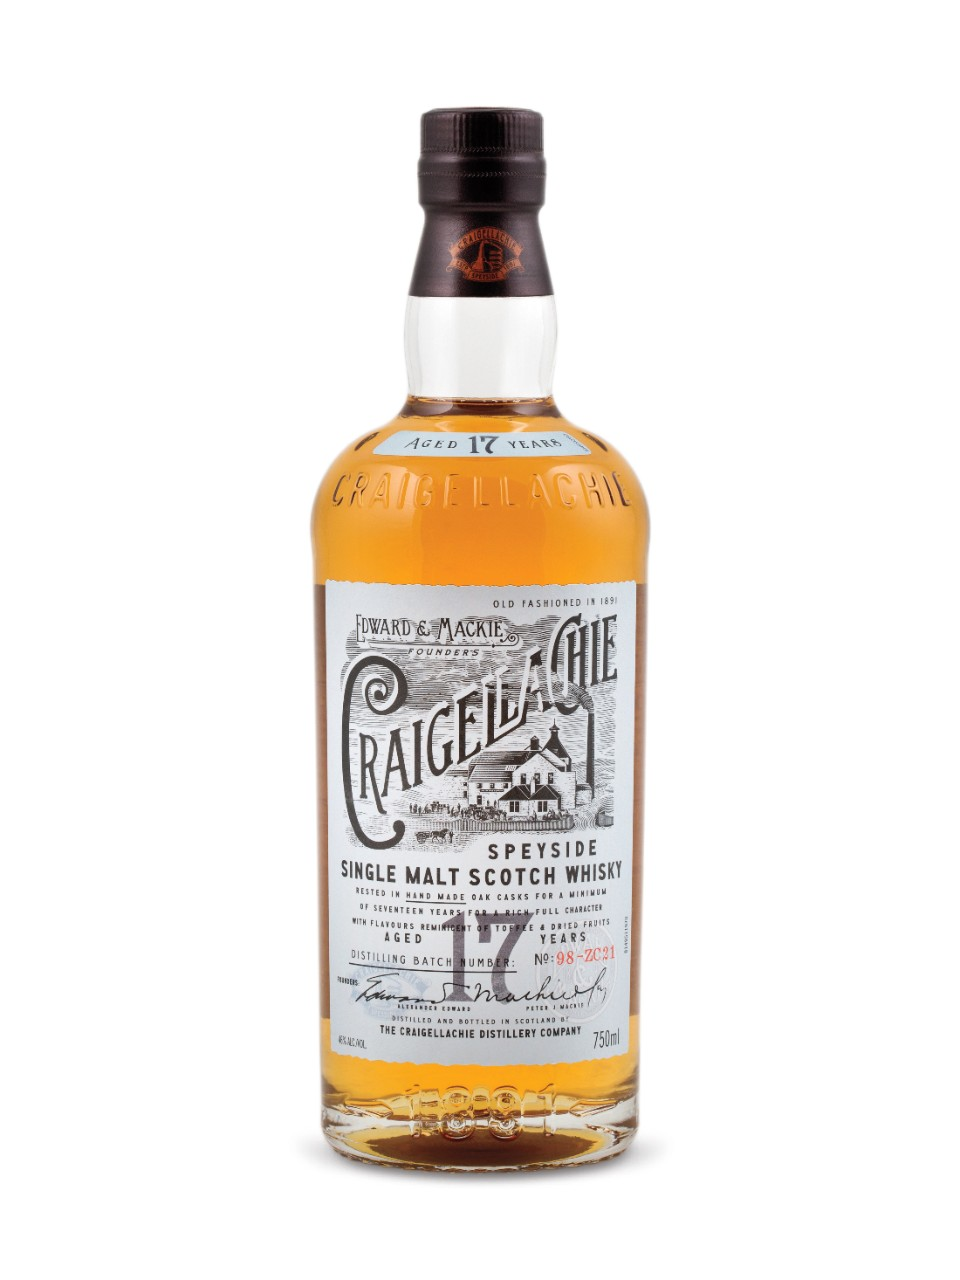 Image for Craigellachie 17 Year Old Speyside Single Malt Scotch Whisky from LCBO